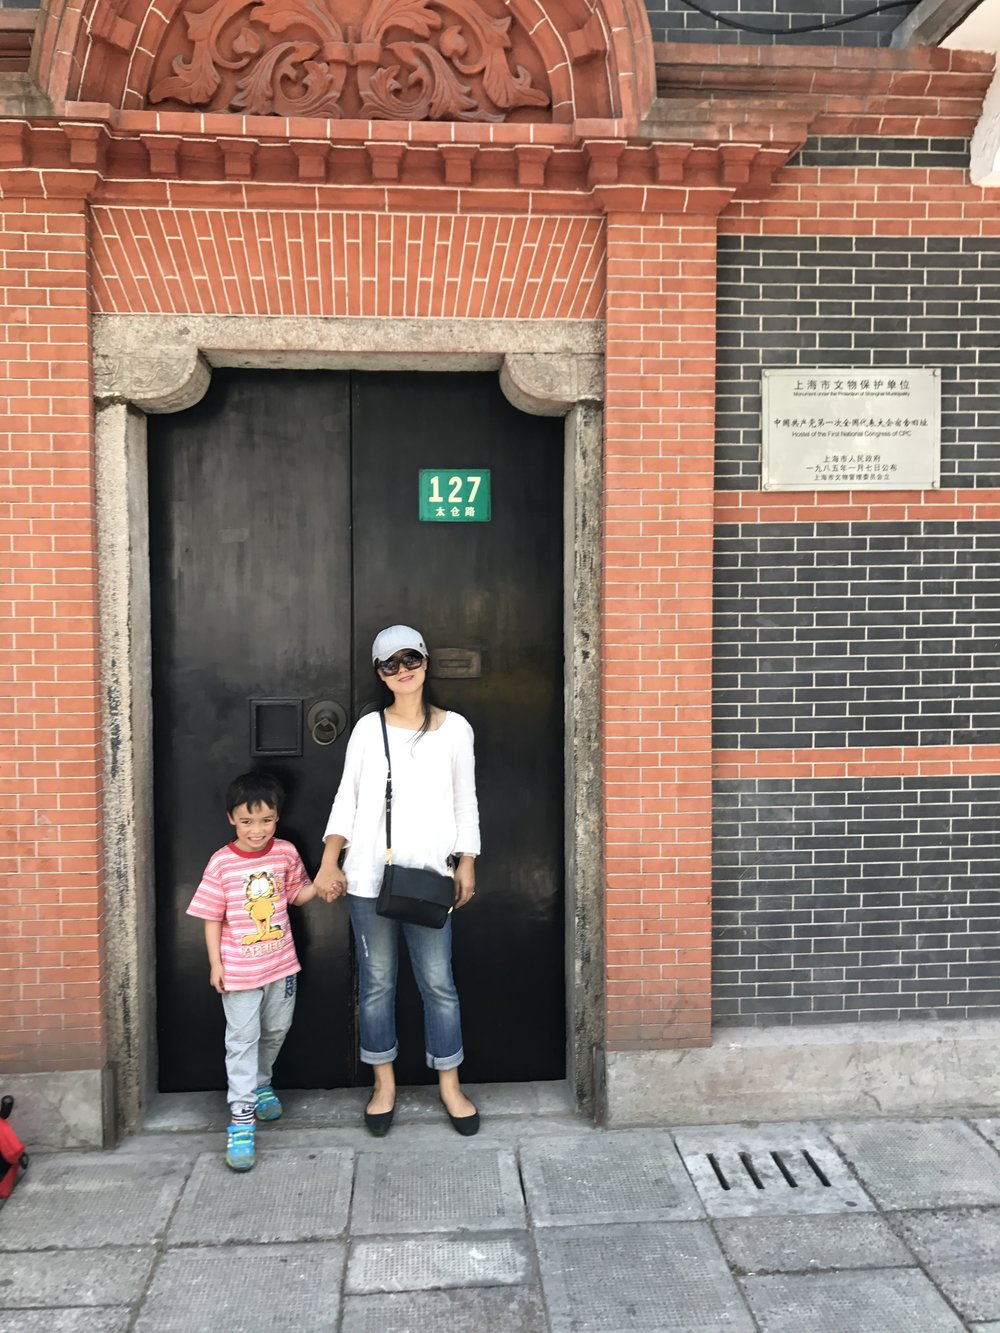 Five years old decided to take this photo with me in front of the gate of Hostel of First National Congress of CPC ( Communist Party of China).